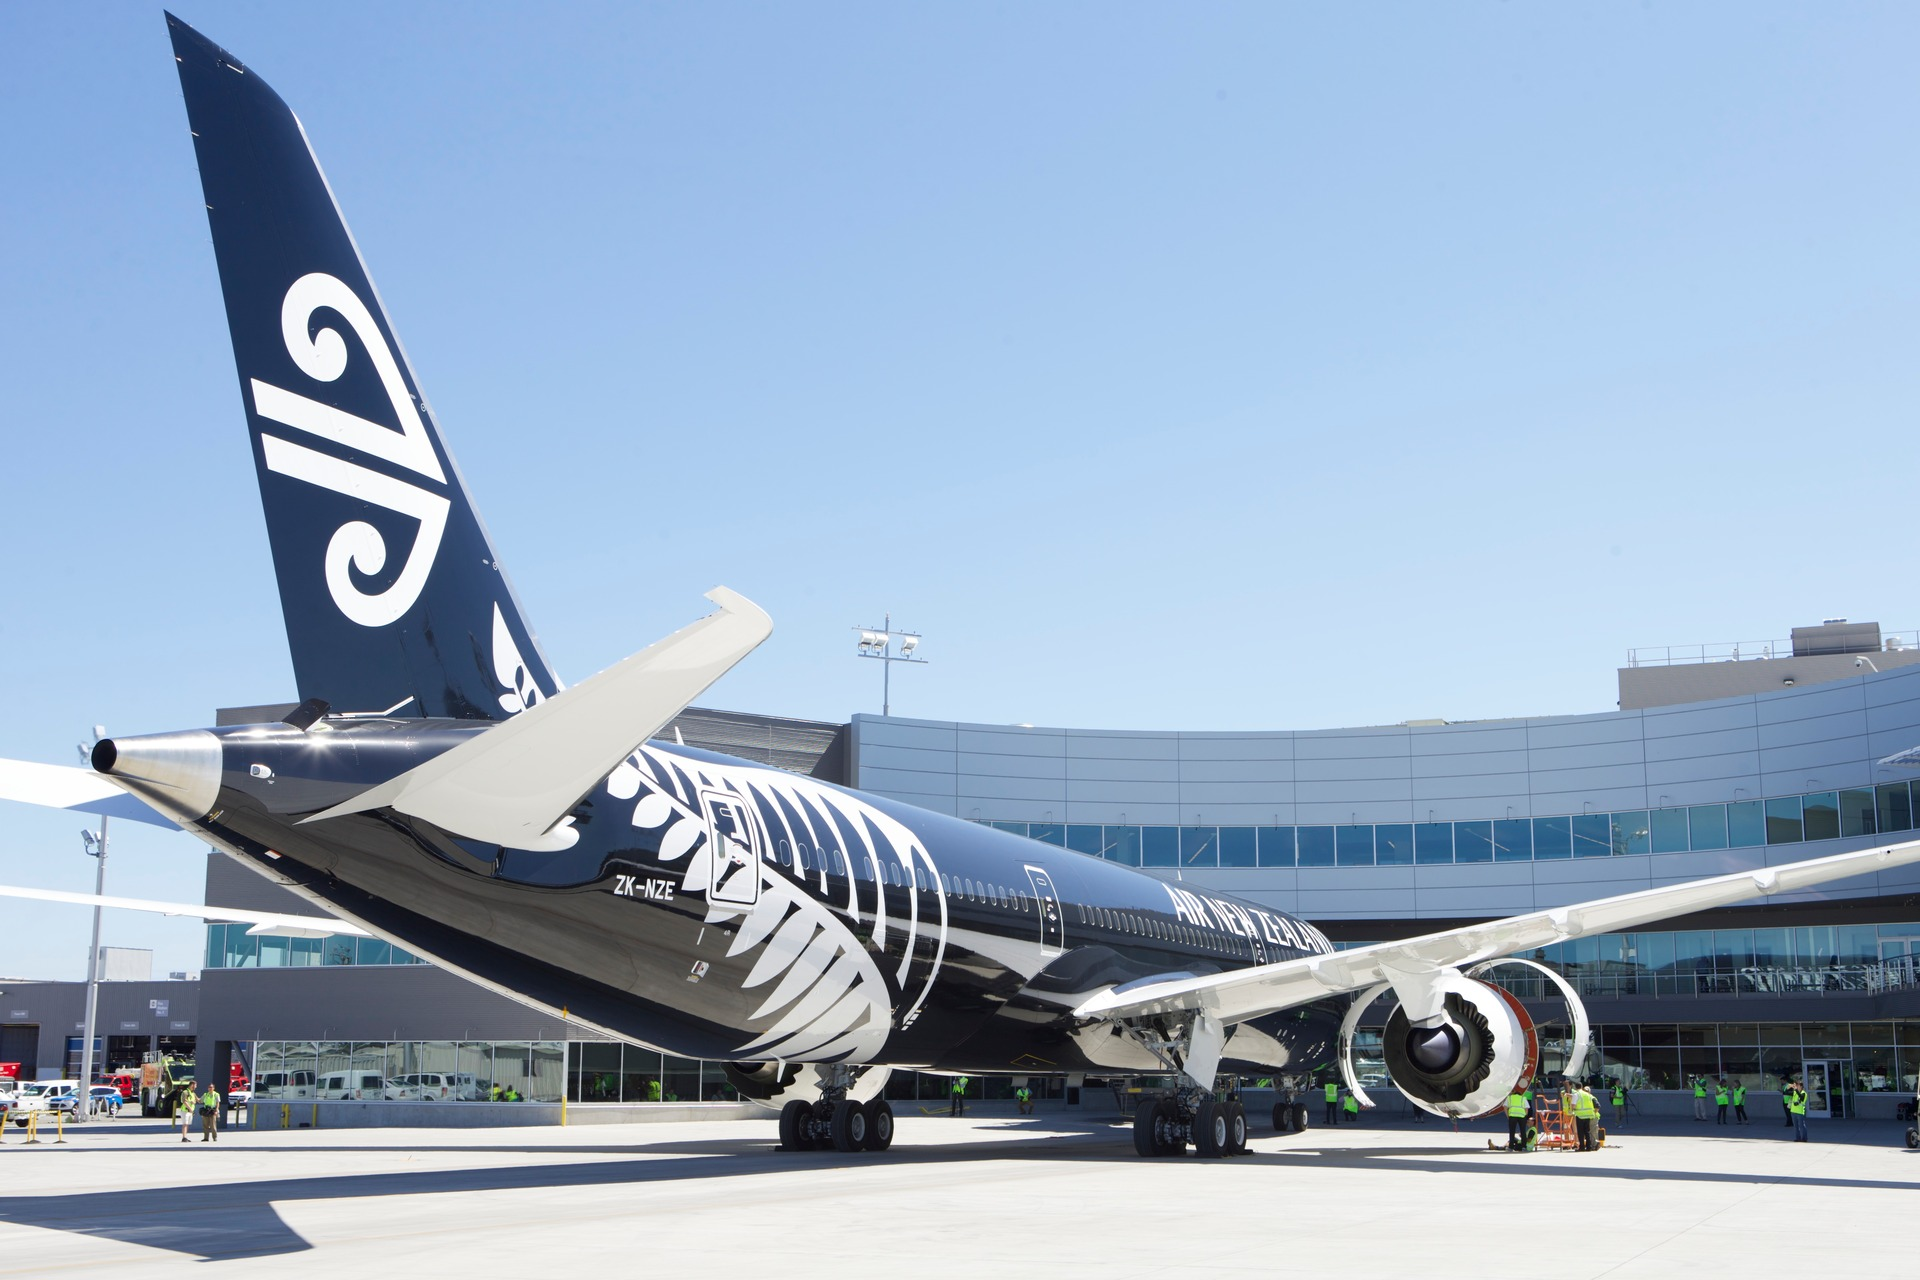 Air New Zealand exploring gender options for 'non-binary' passengers